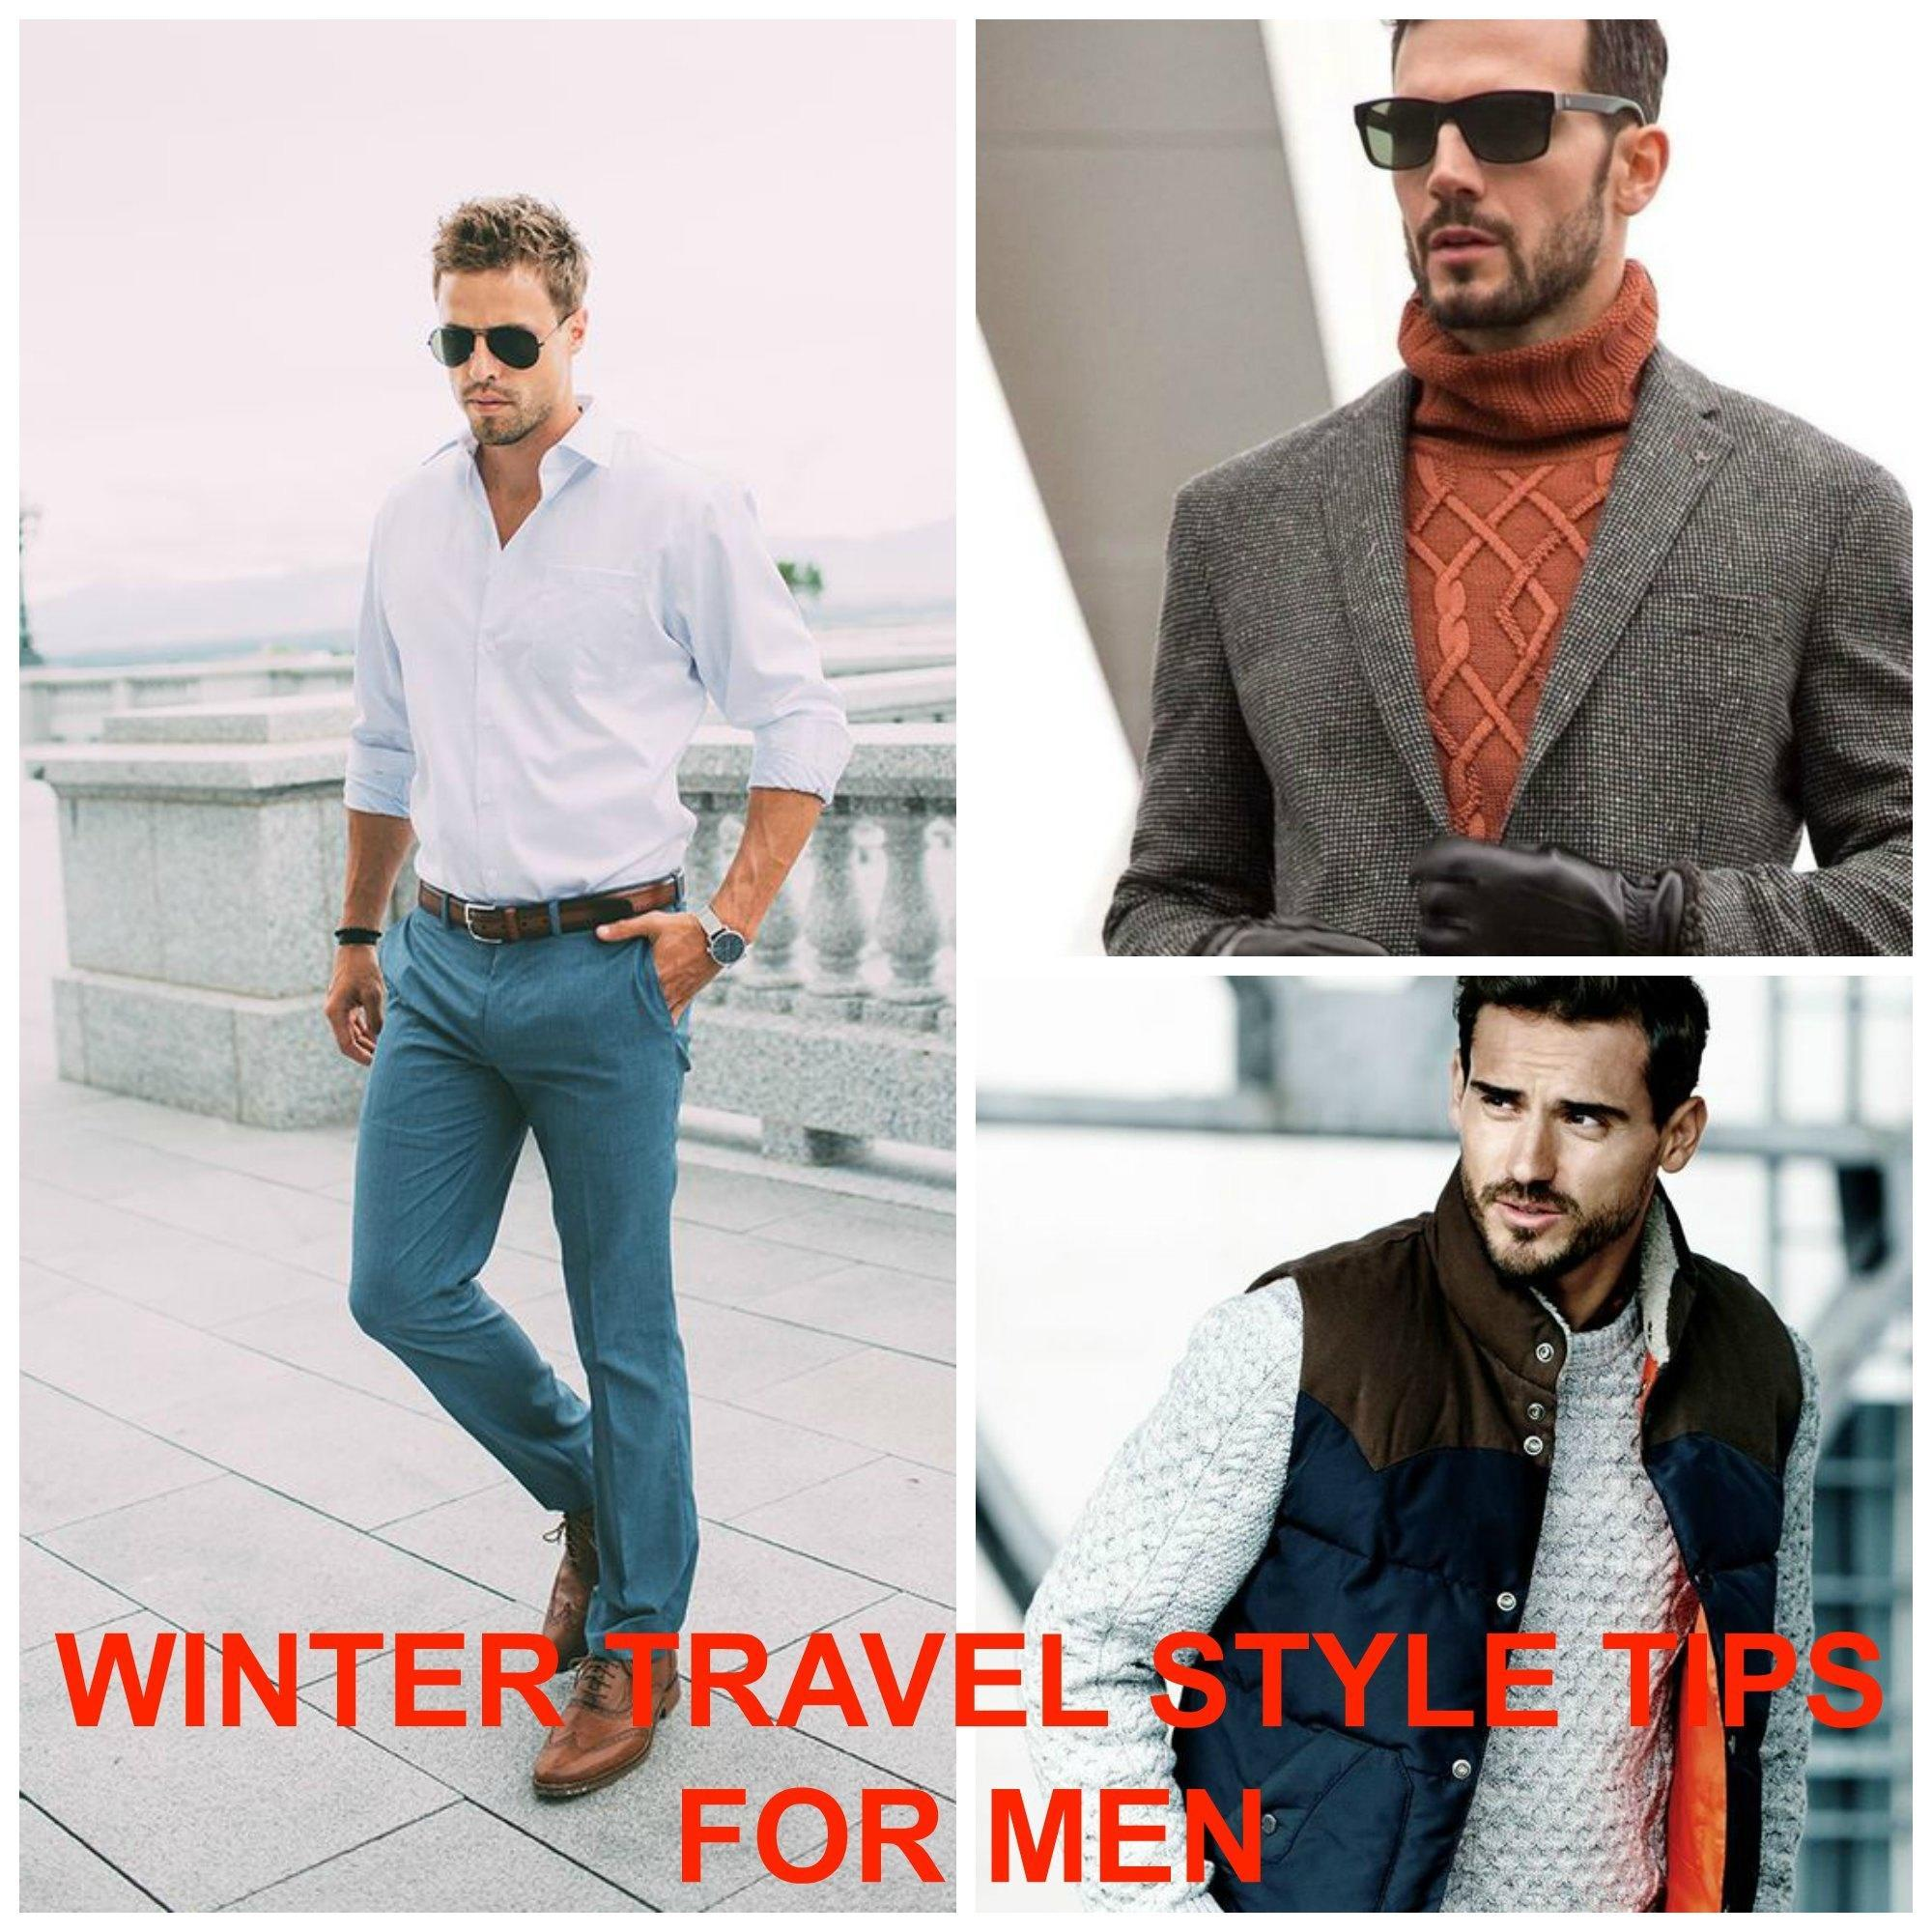 Travel tips for men